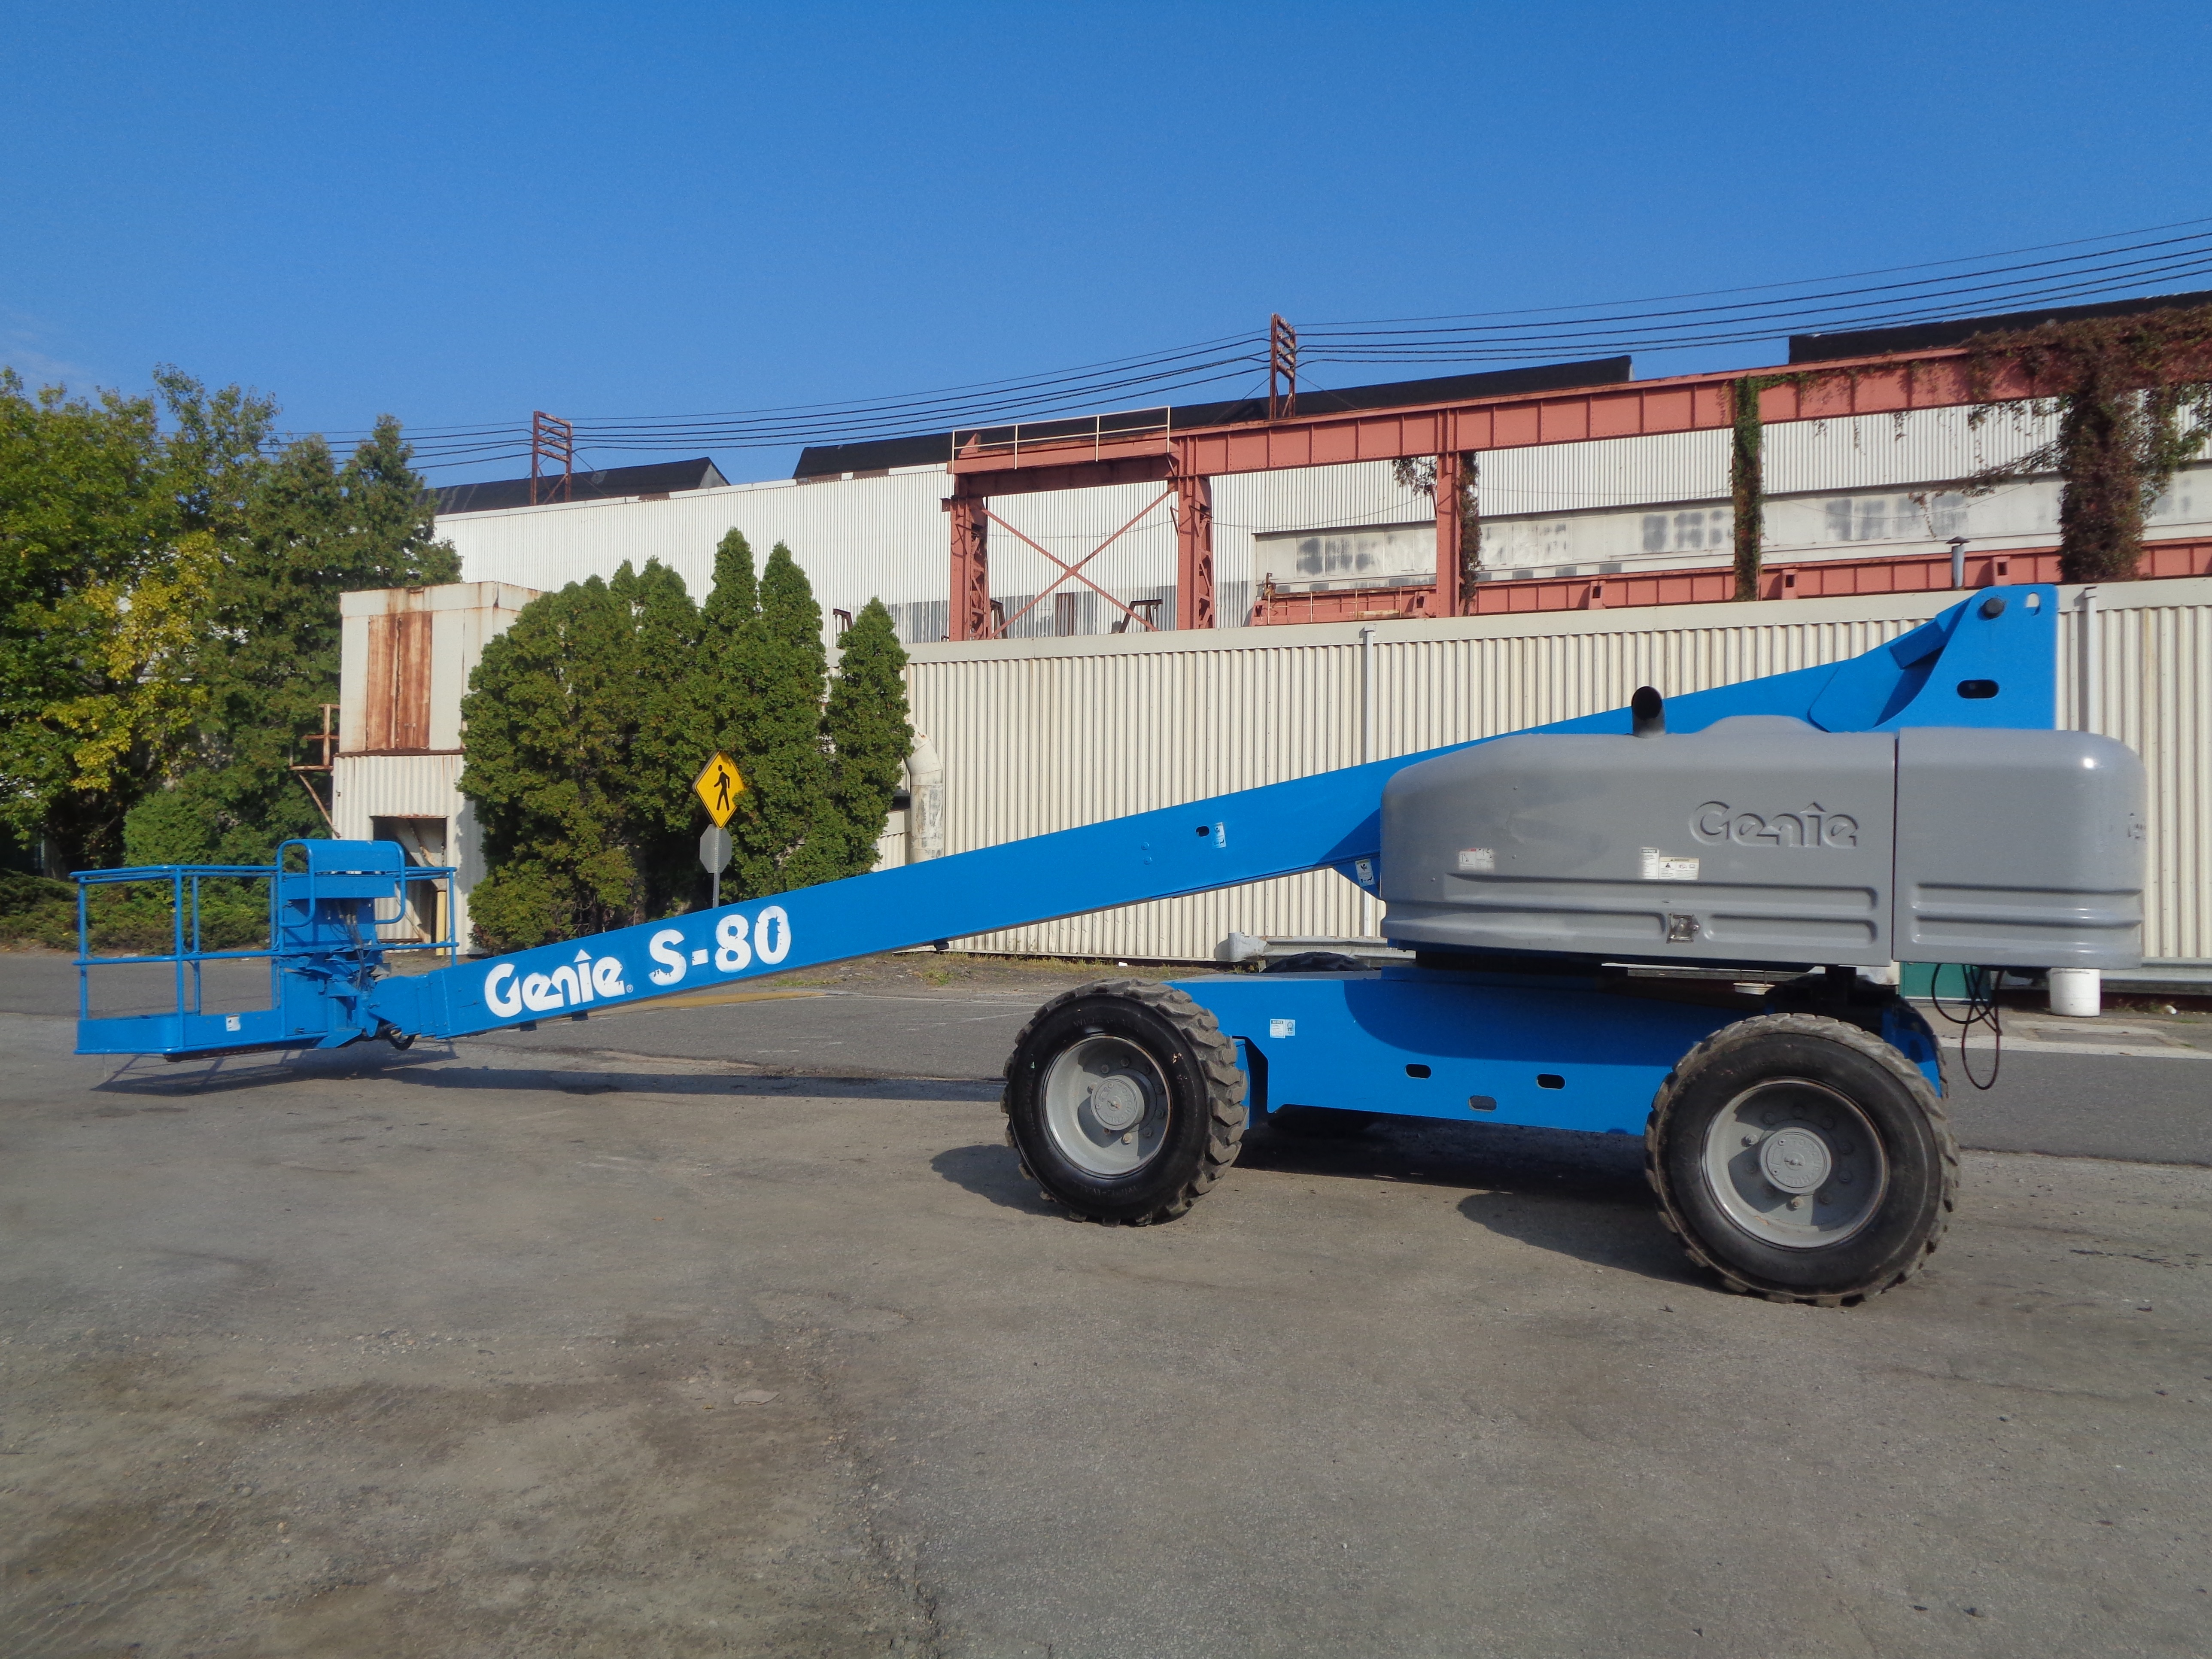 Genie S80 80ft Boom Lift - Image 5 of 22